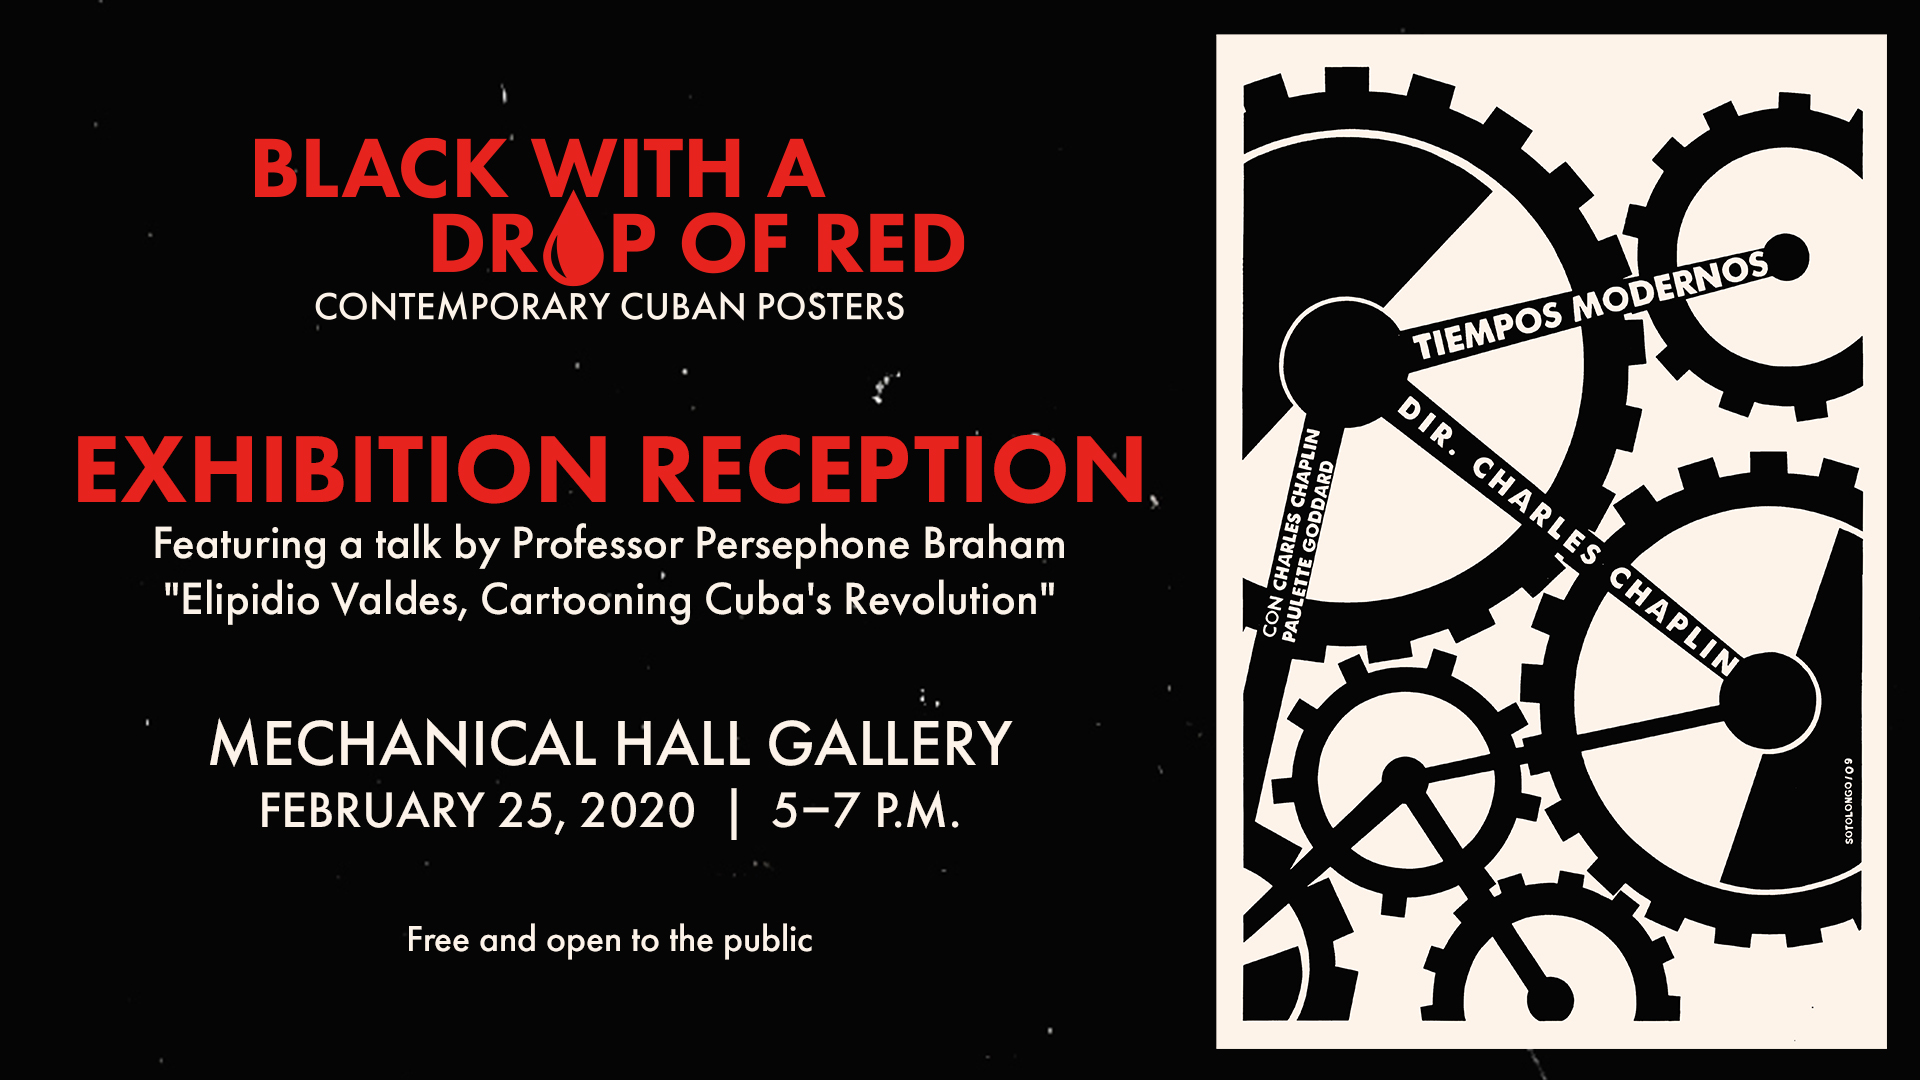 Promotional image for the Cuban Posters exhibition reception